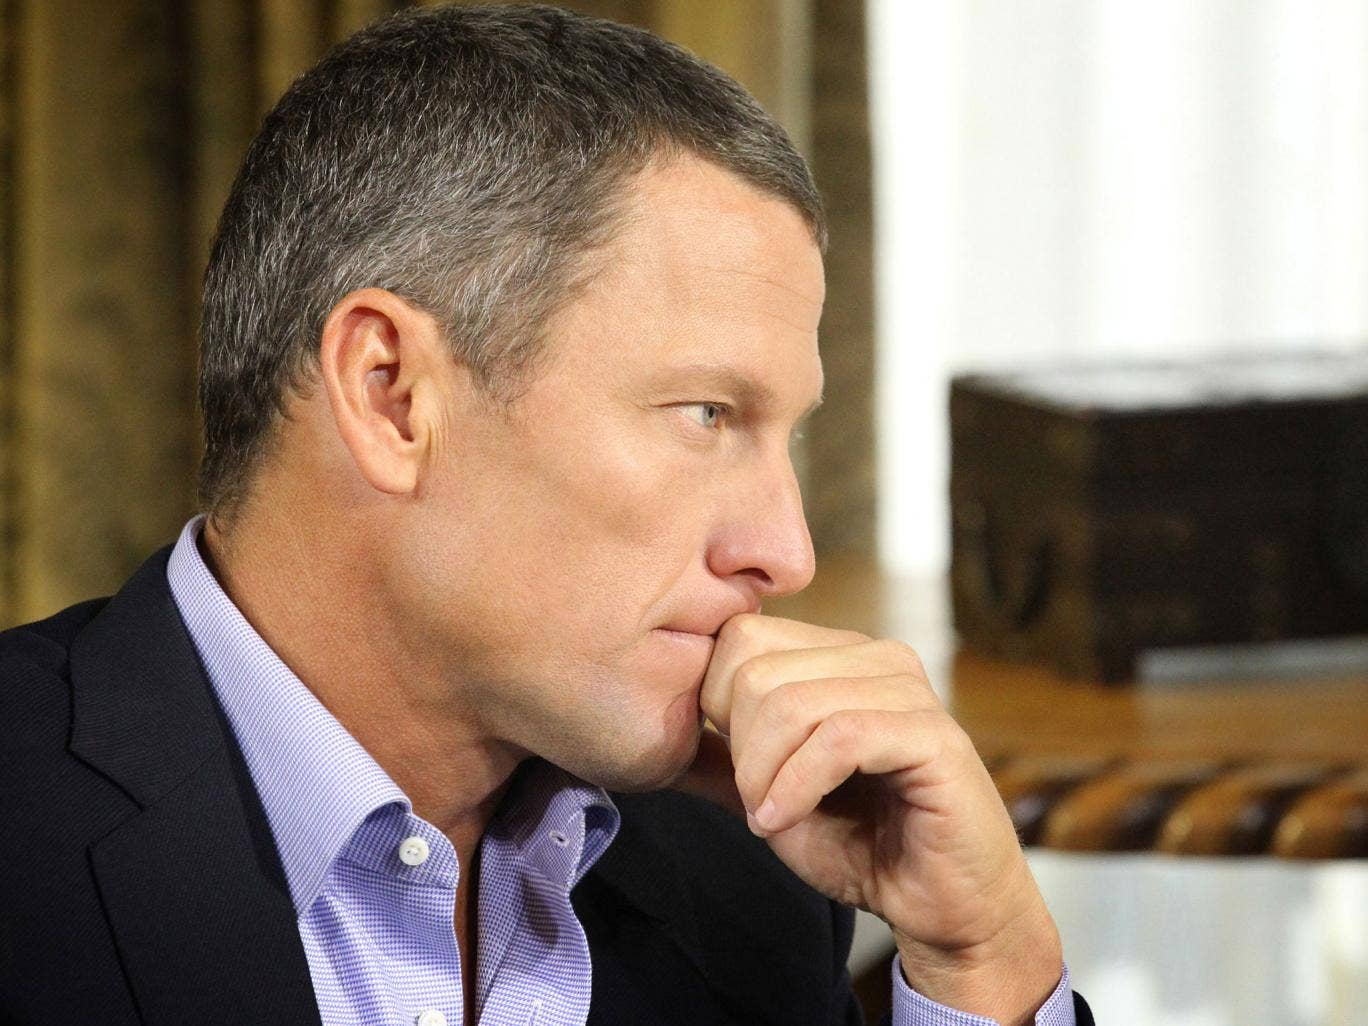 Lance Armstrong pictured during his interview with Oprah Winfrey